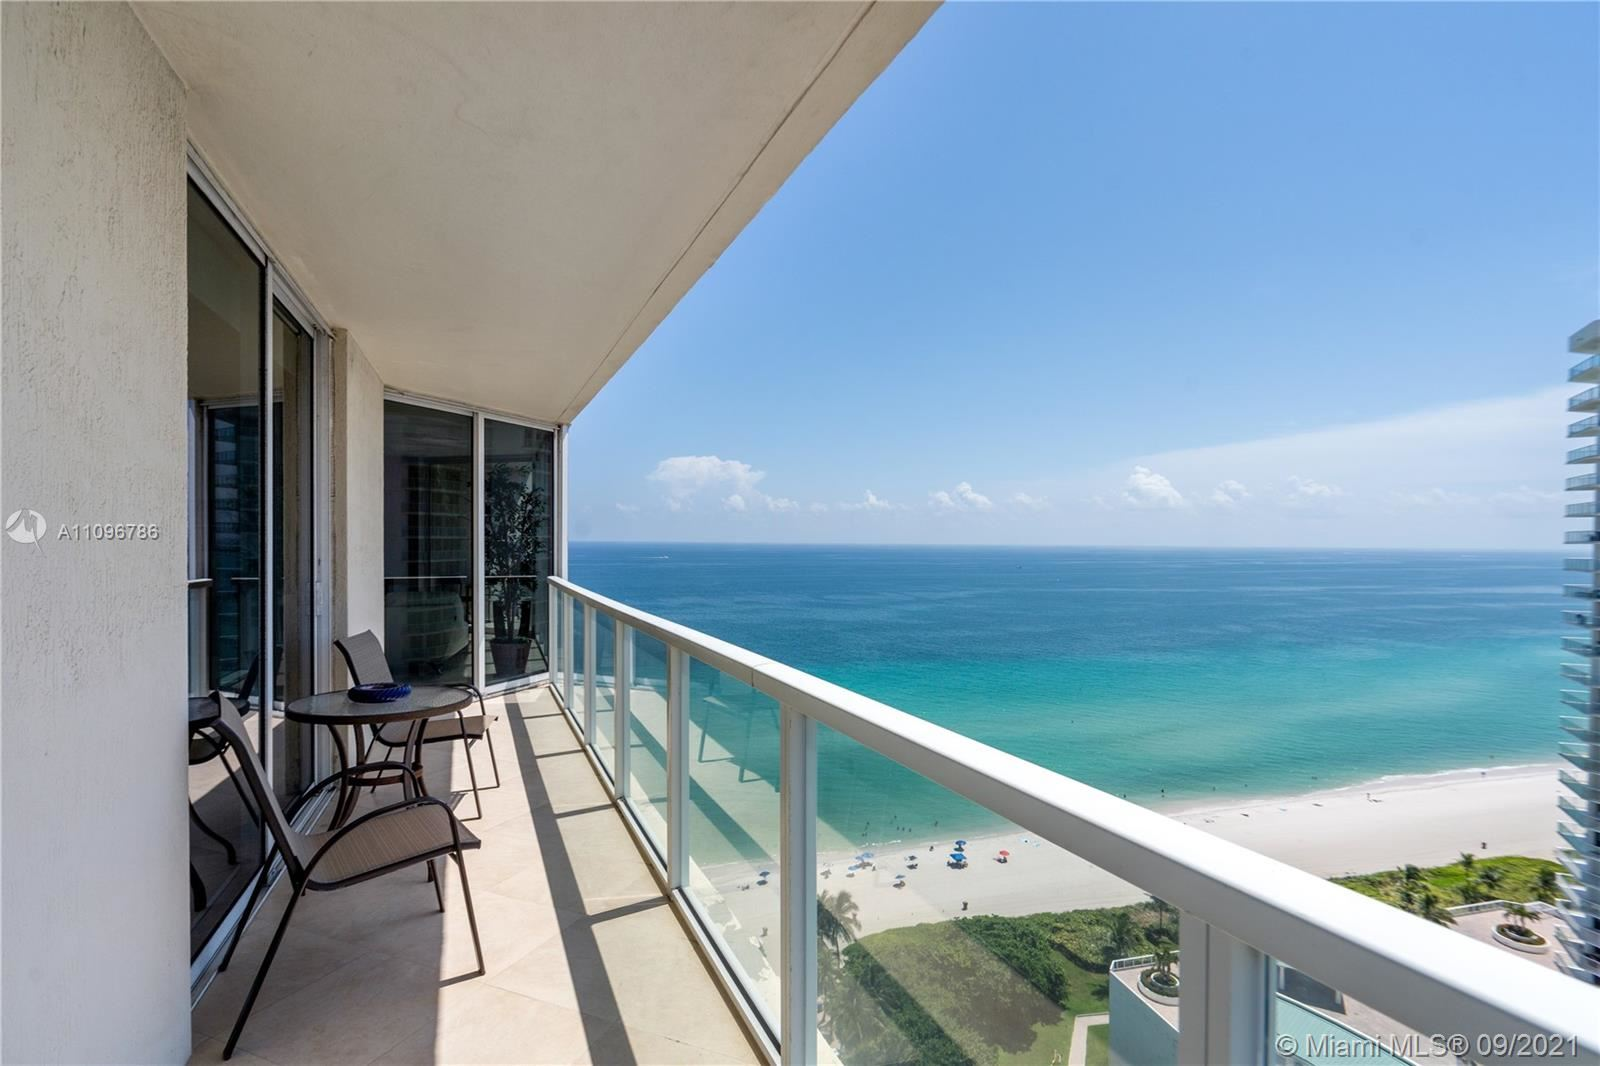 16699 Collins Ave #2308, Sunny Isles, FL 33160 - #: A11096786